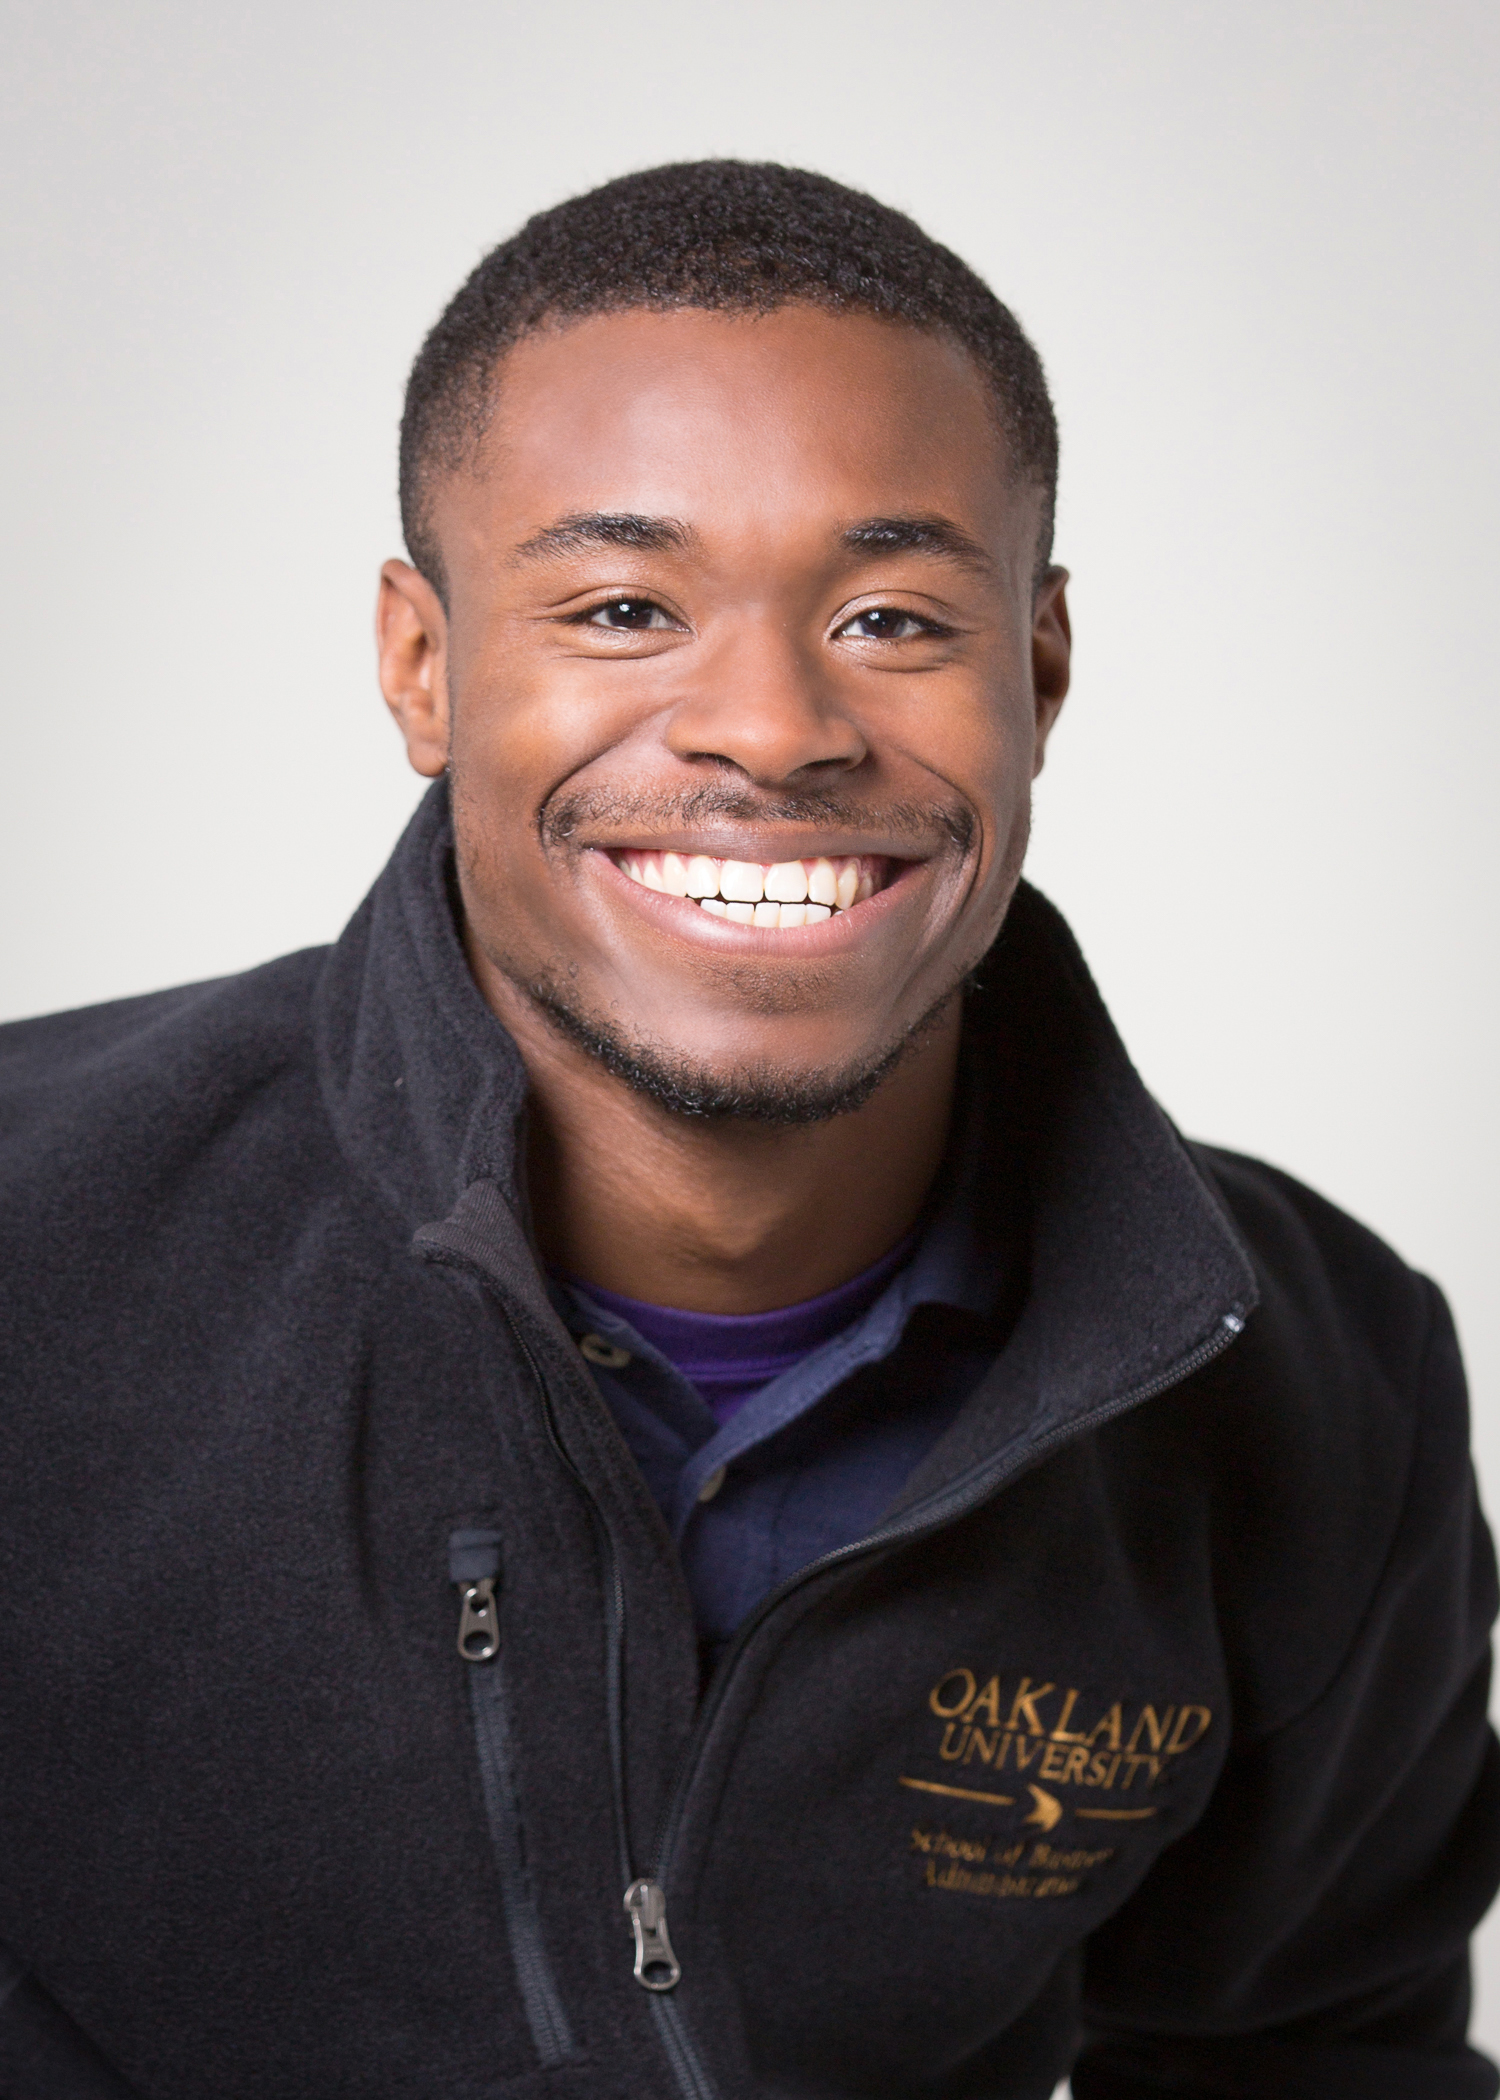 Destin Eddington, business school adviser. Image of African American man smiling, wearing black OU shirt.